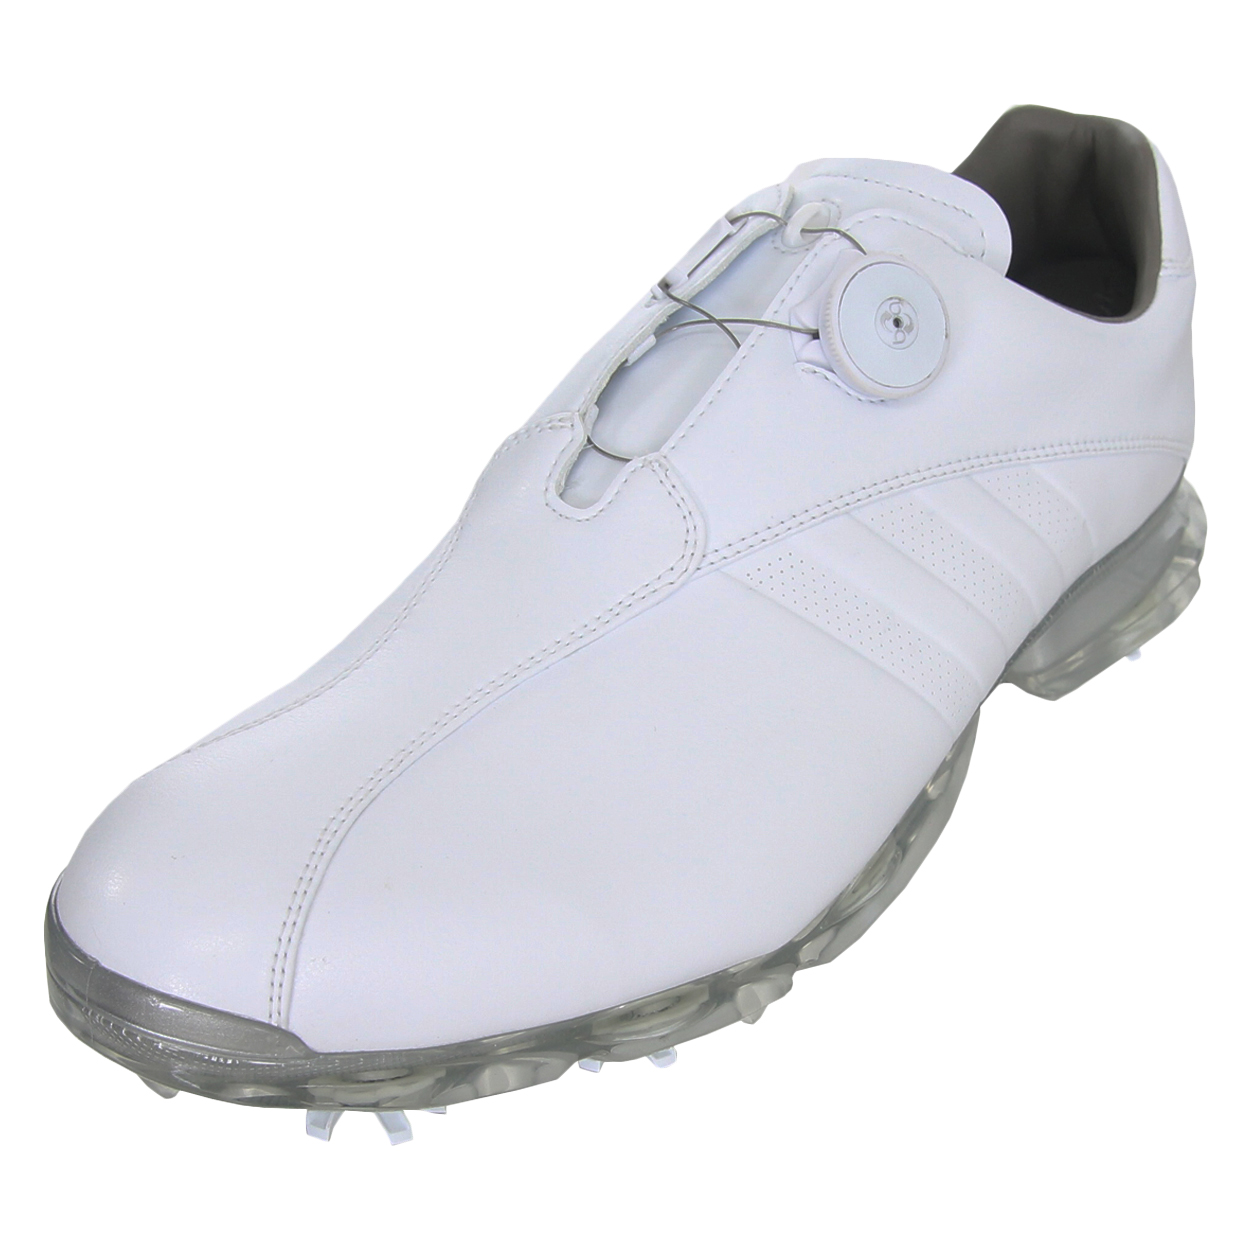 Turf Shoes On Golf Course